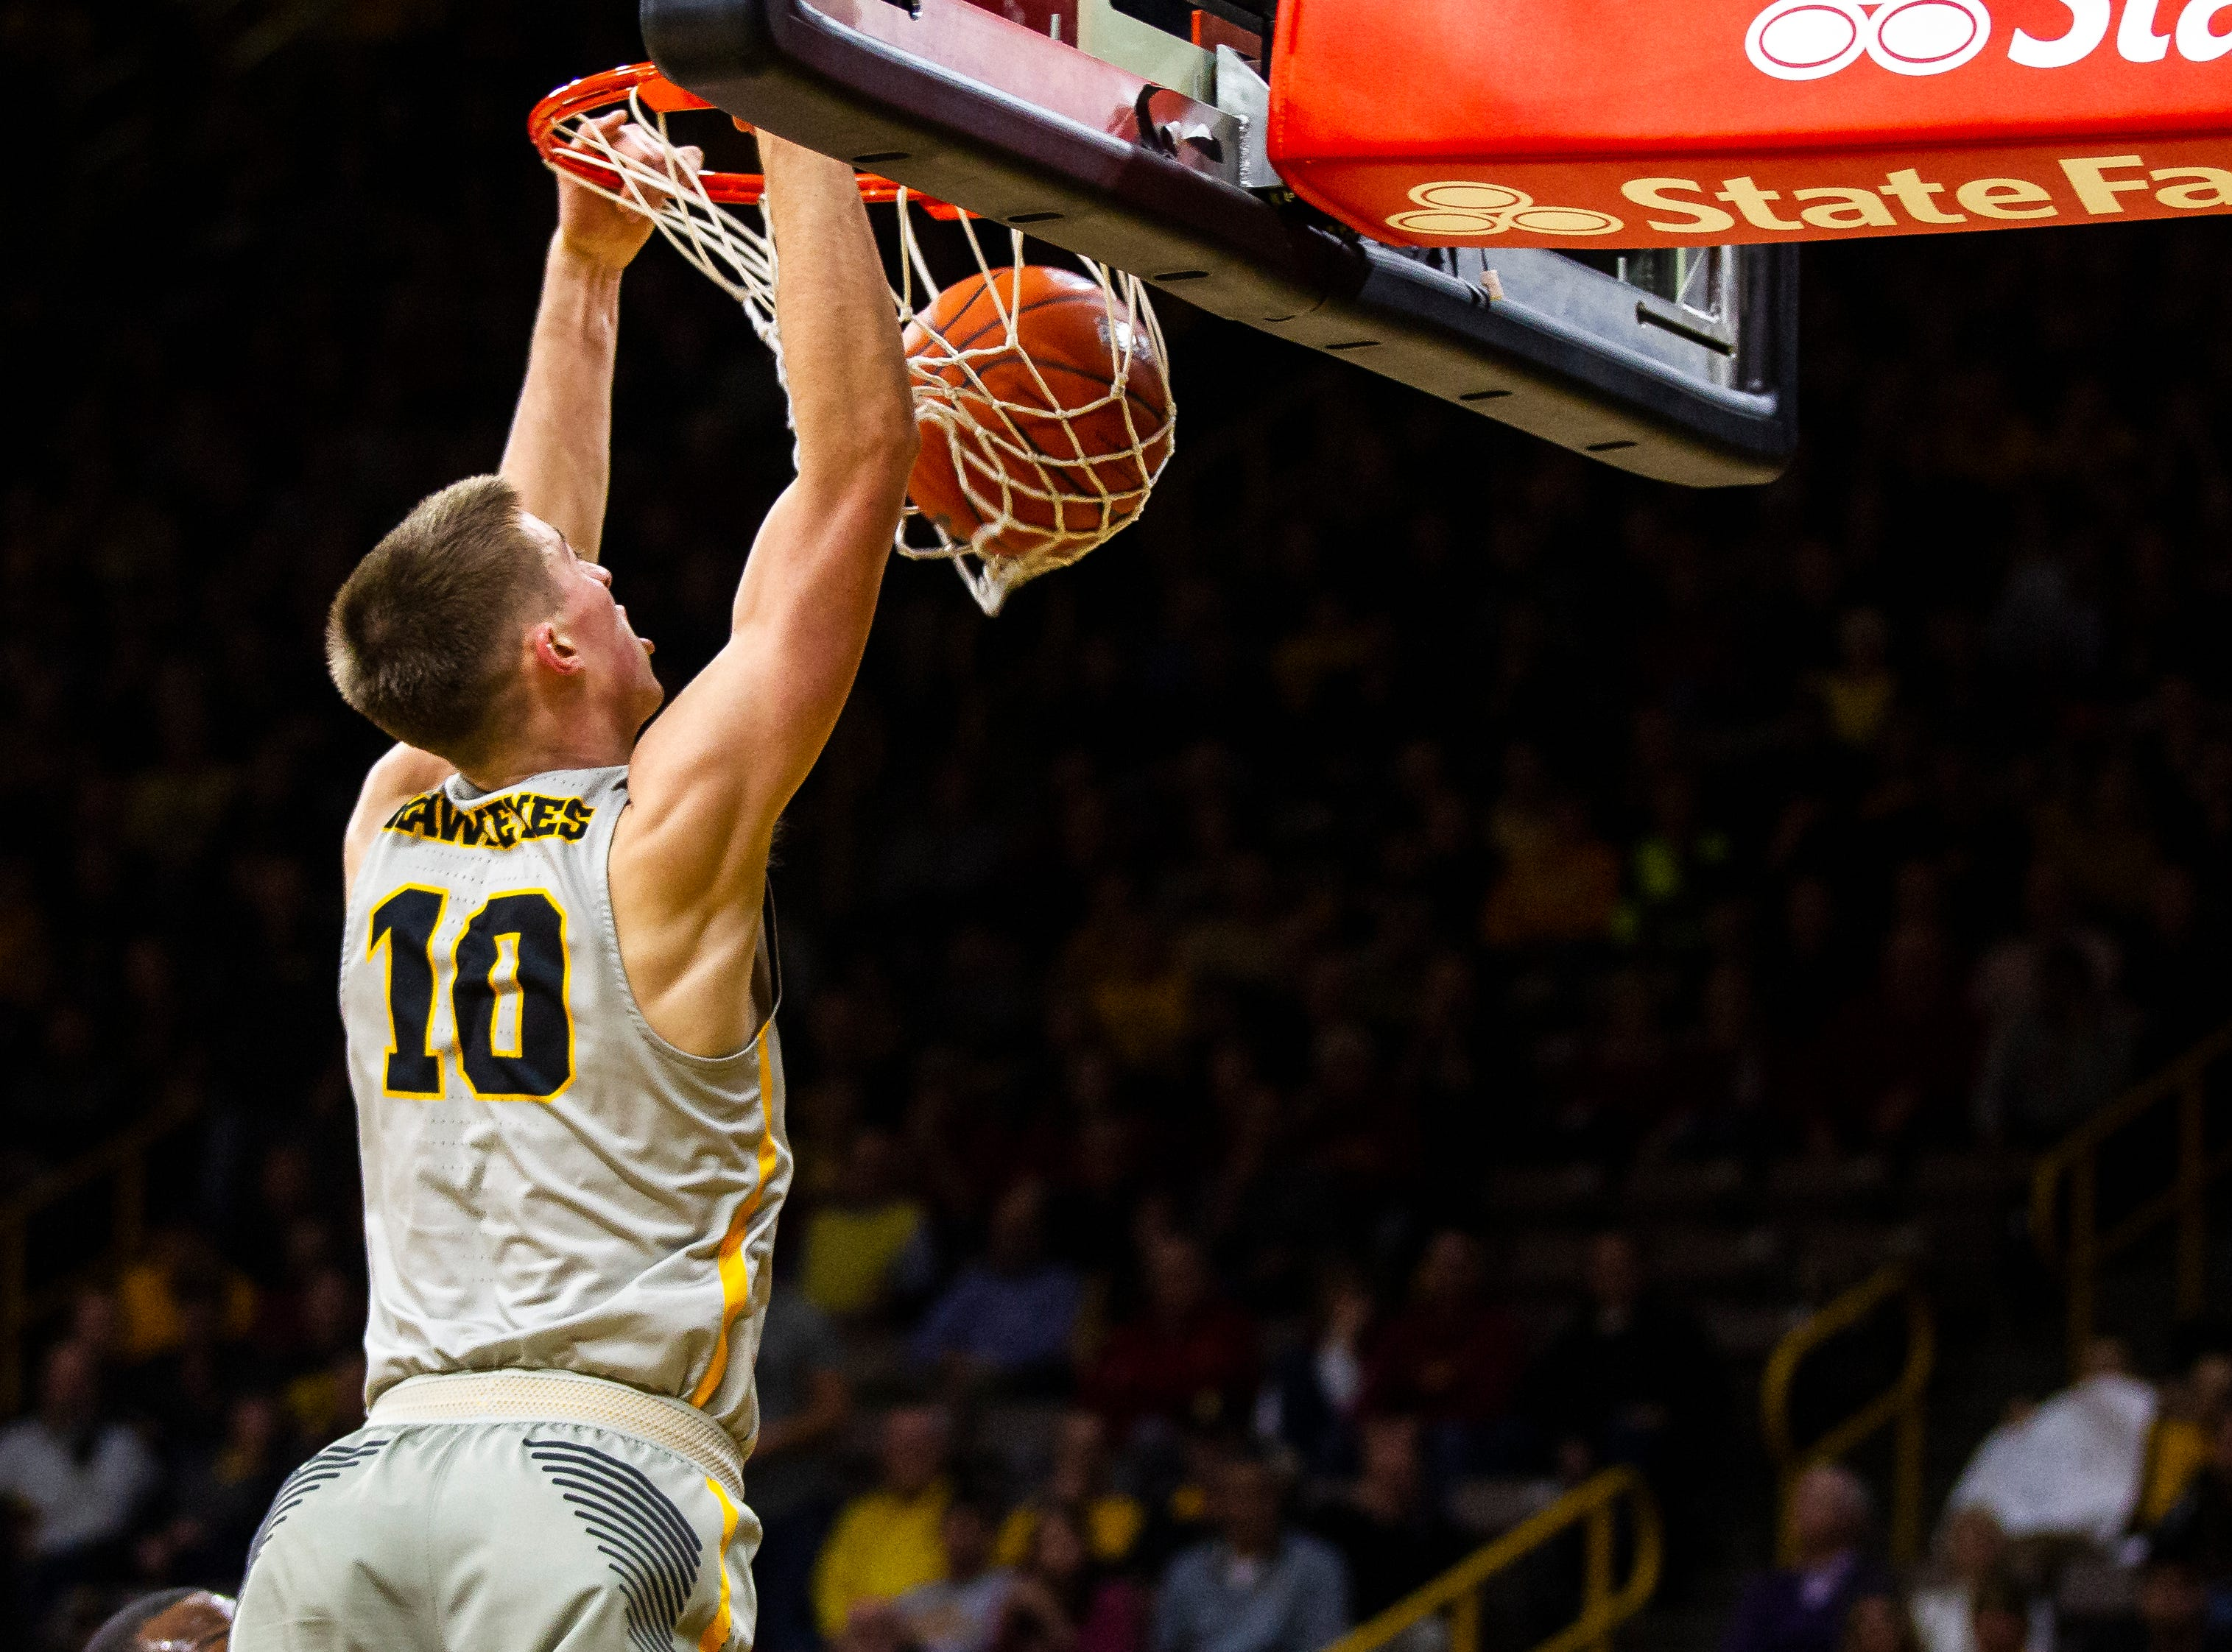 Iowa guard Joe Wieskamp (10) dunks during a NCAA Cy-Hawk series men's basketball game on Thursday, Dec. 6, 2018, at Carver-Hawkeye Arena in Iowa City.